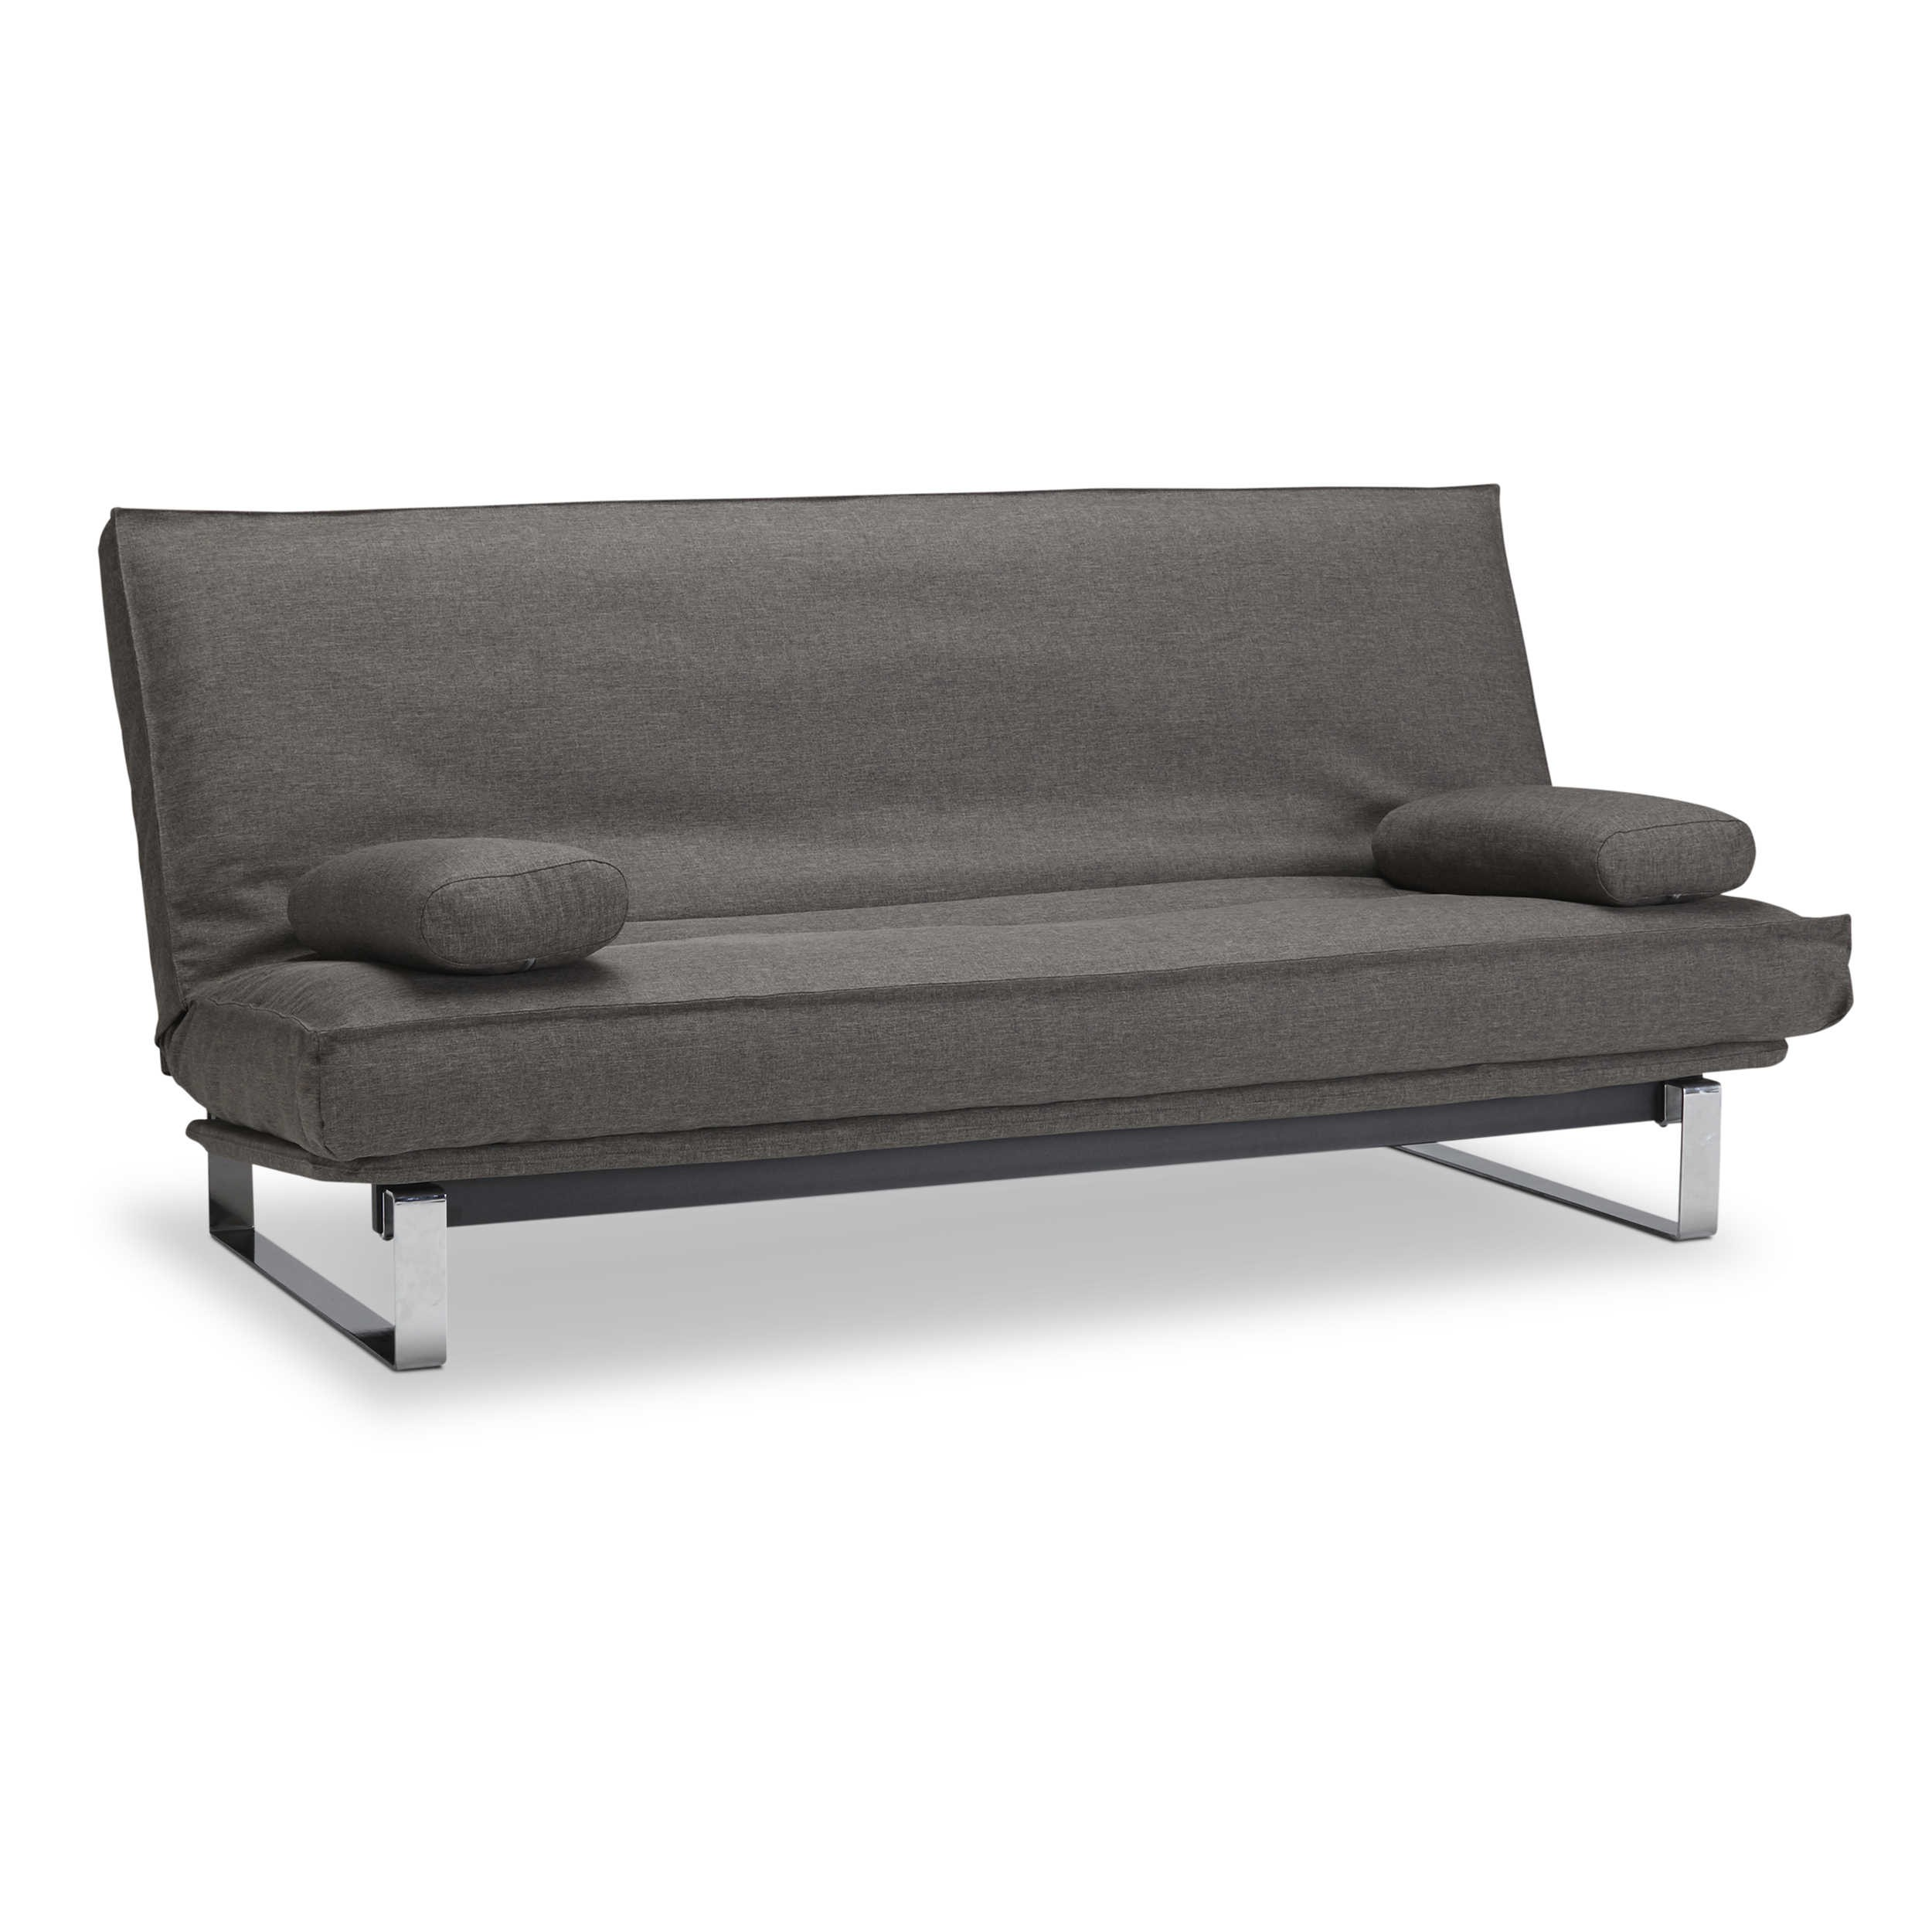 Innovation Schlafsofa Innovation Schlafsofa Minimum Anthrazit Stoff Online